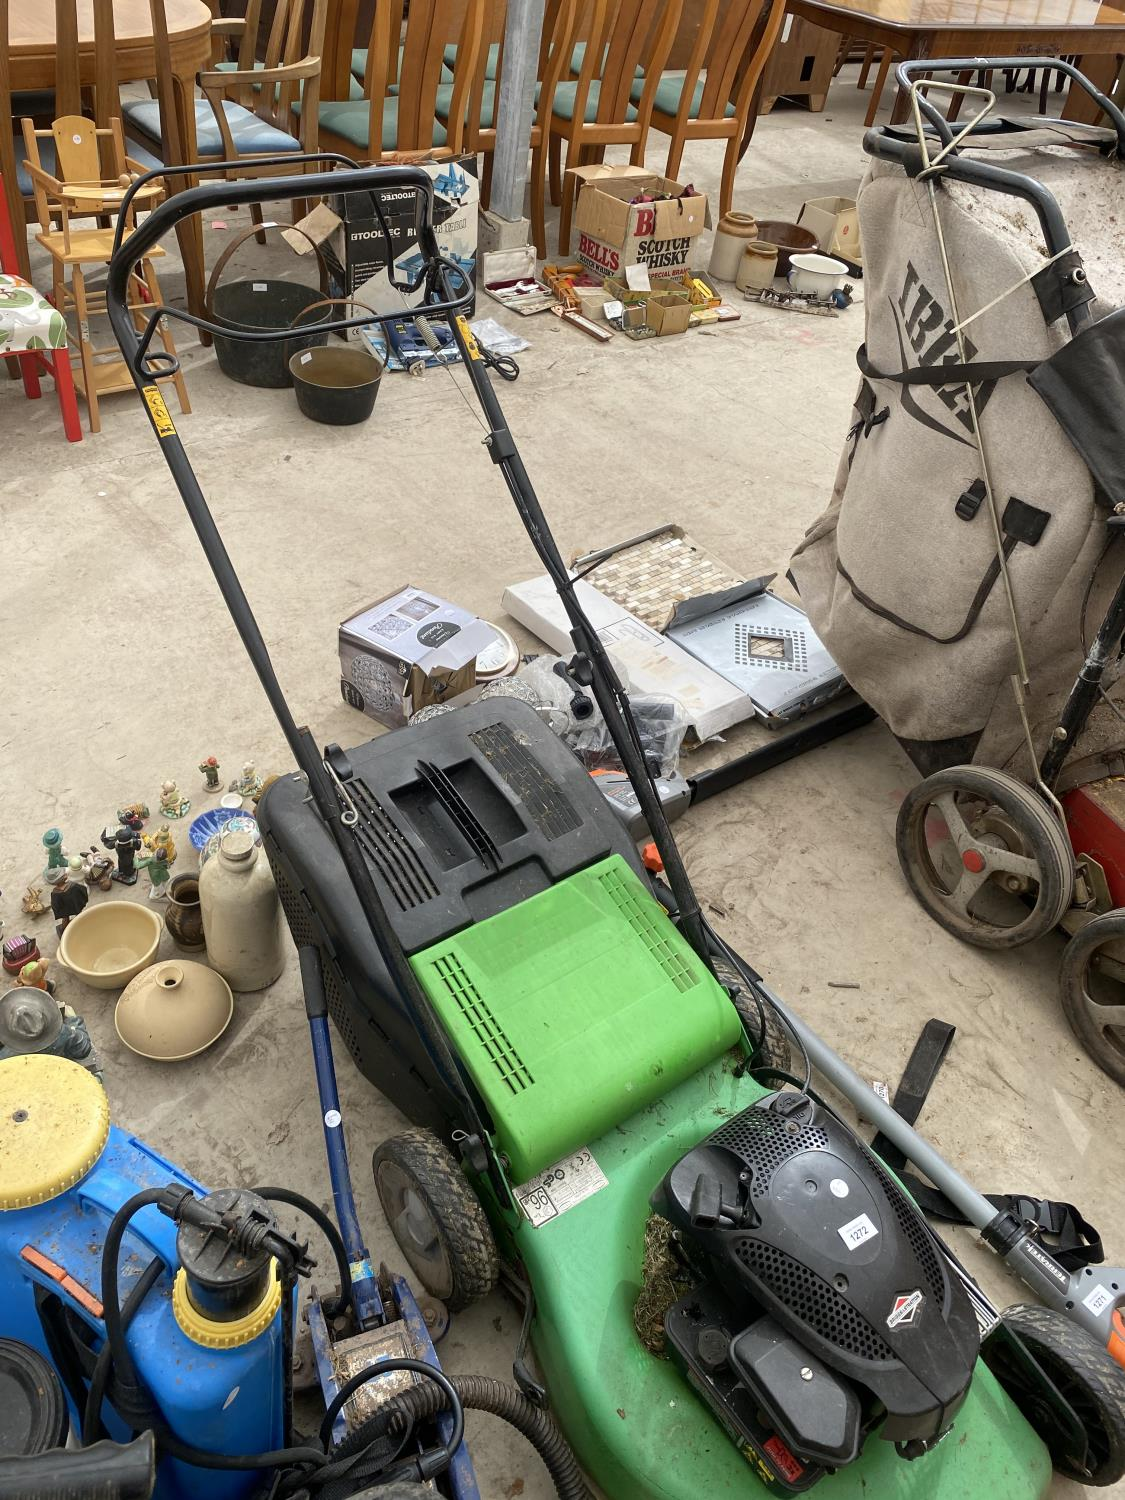 A FLORA BEST LAWN MOWER WITH GRASS BOX AND BRIGGS AND STRATTON PETROL ENGINE - Image 5 of 5